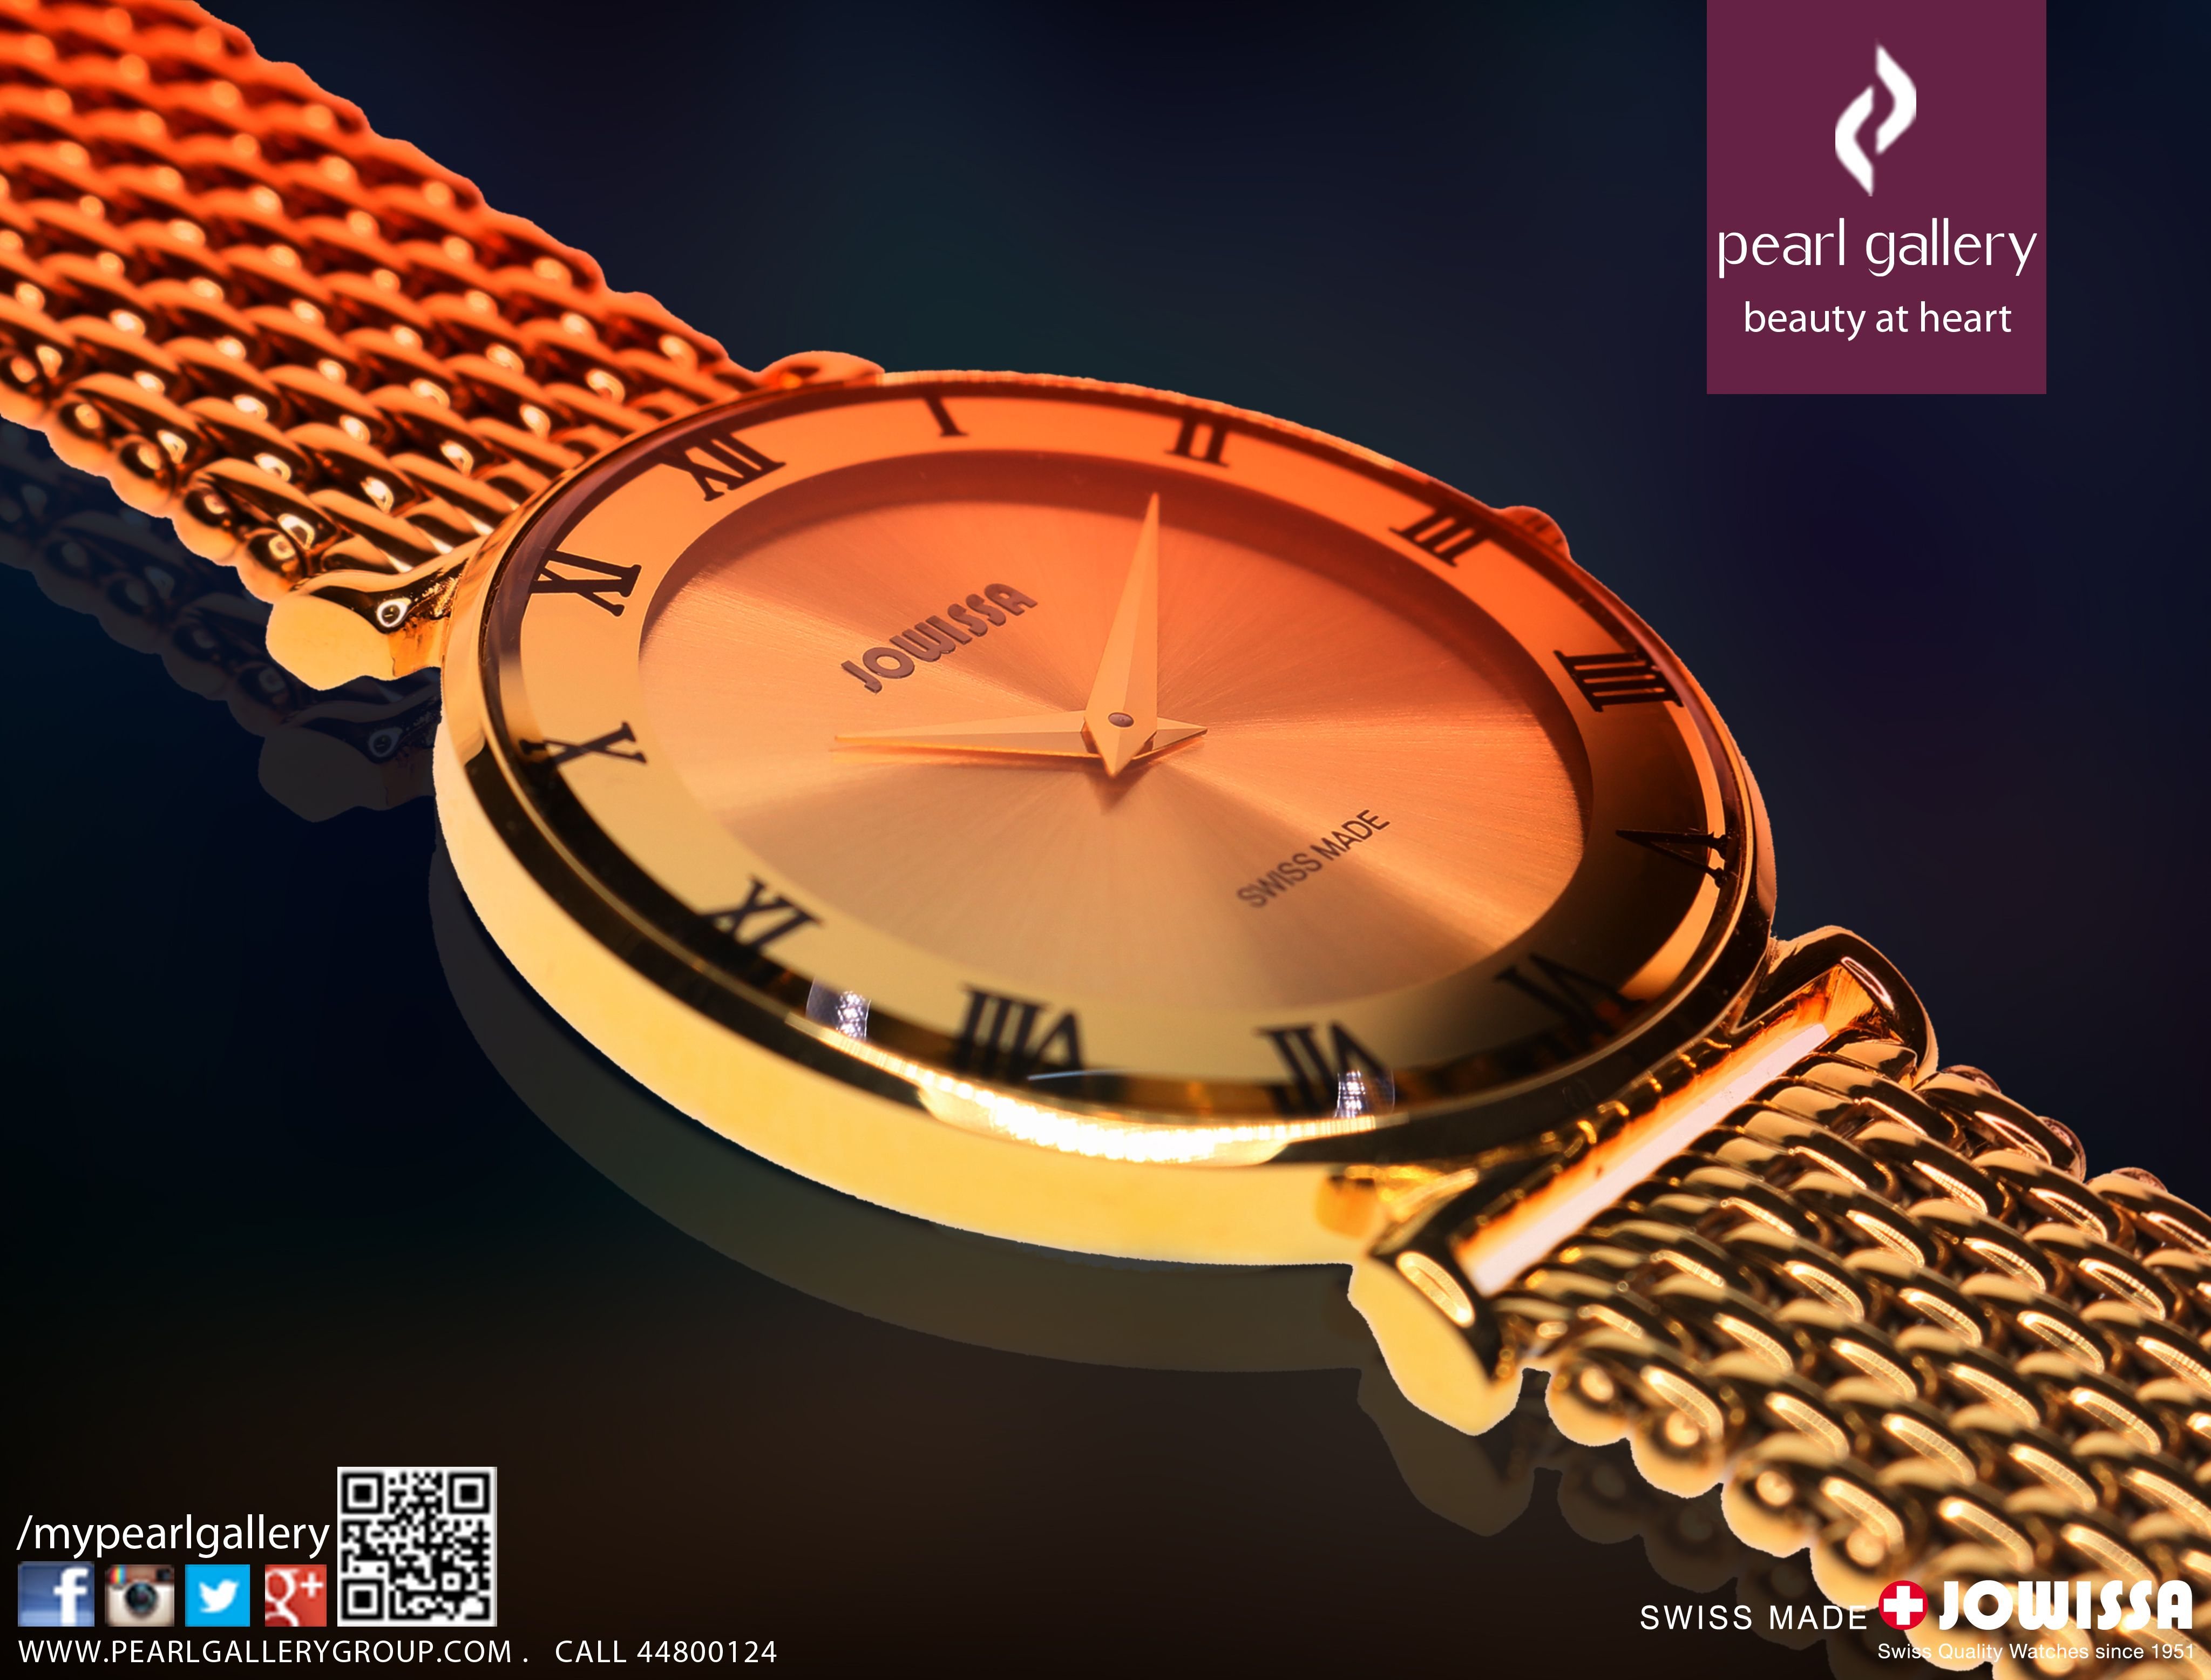 Discover Our Selection Of Jowissa Watches Find Swiss Watches For Men And Women On Swiss Made Watches Our Showrooms